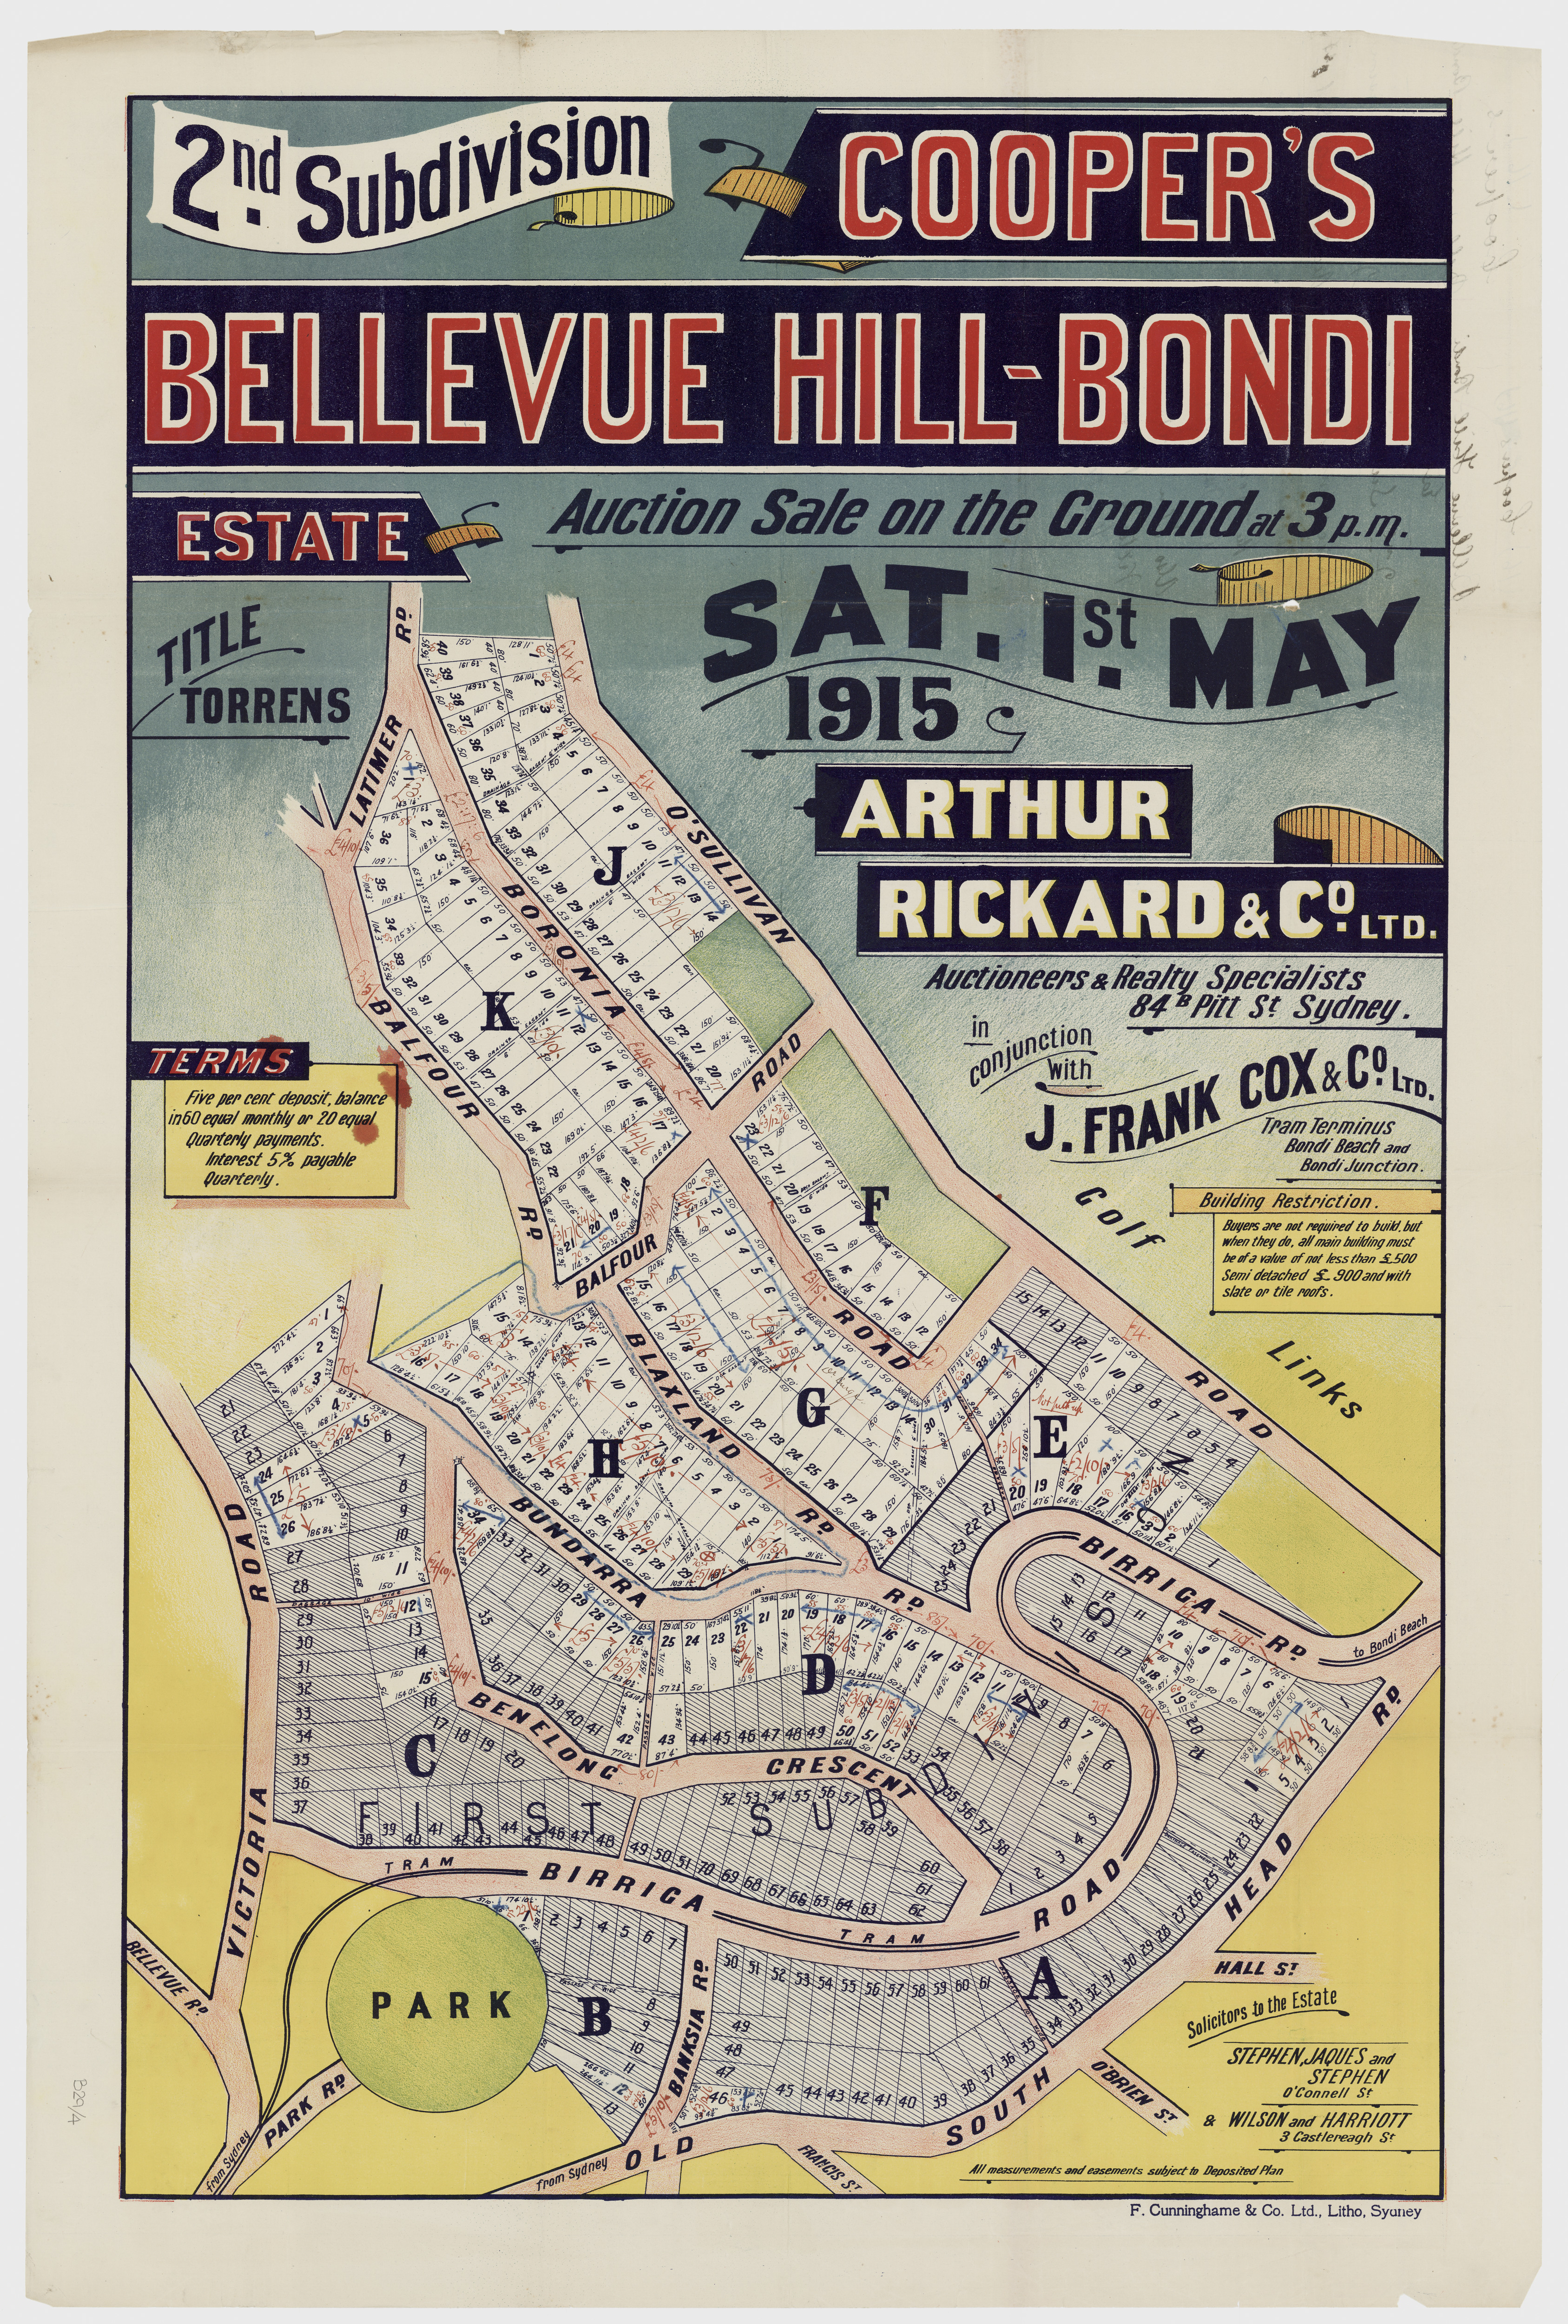 Sales plan for the second subdivision of the Cooper's Bellevue Hill-Bondi Estate offered for sale in 1915.  Image: From the collections of the State Library of New South Wales  c028640004